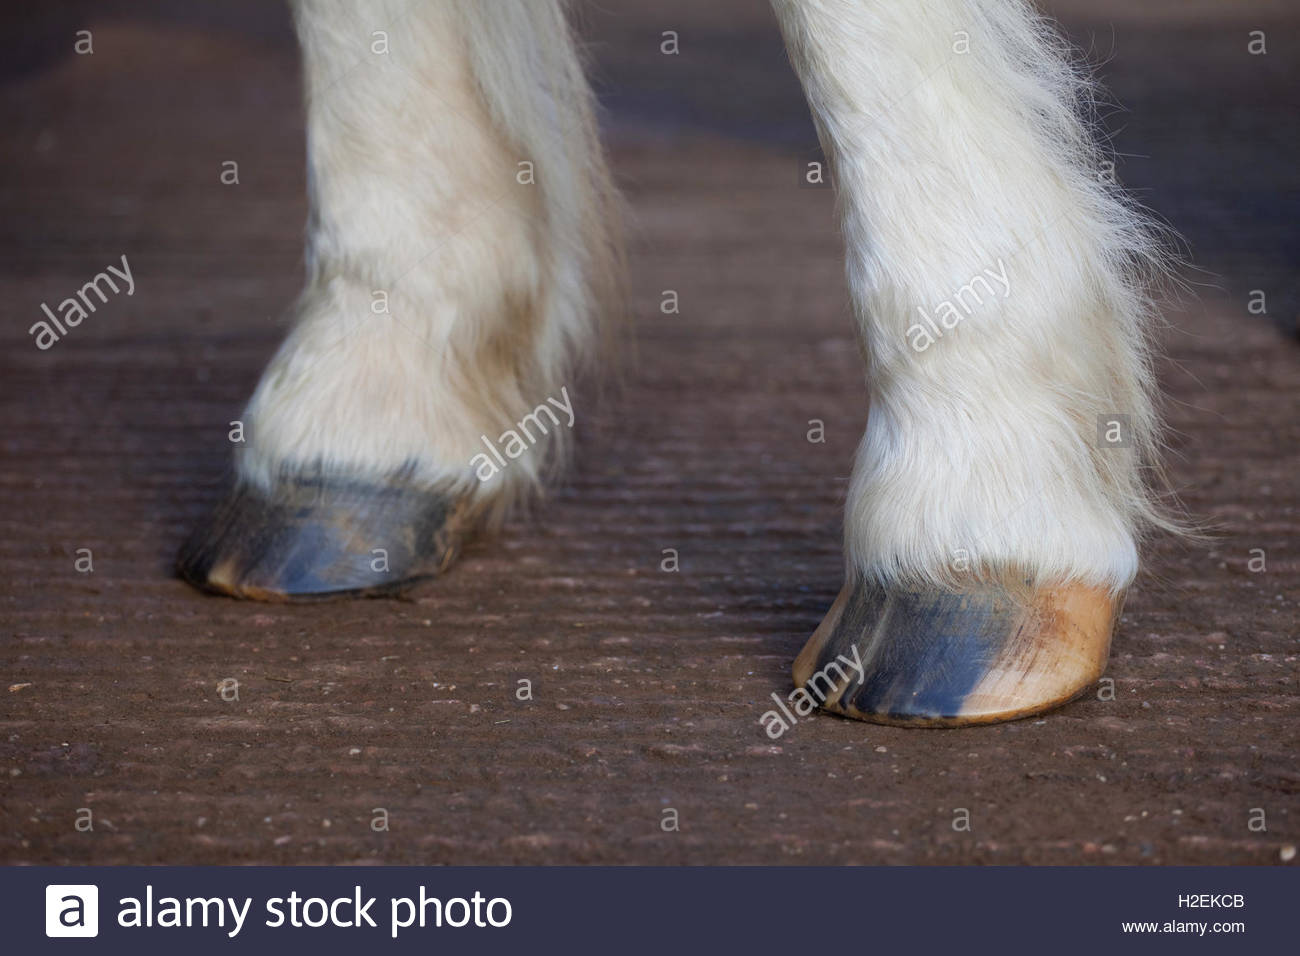 Front hooves of a horse. - Stock Image